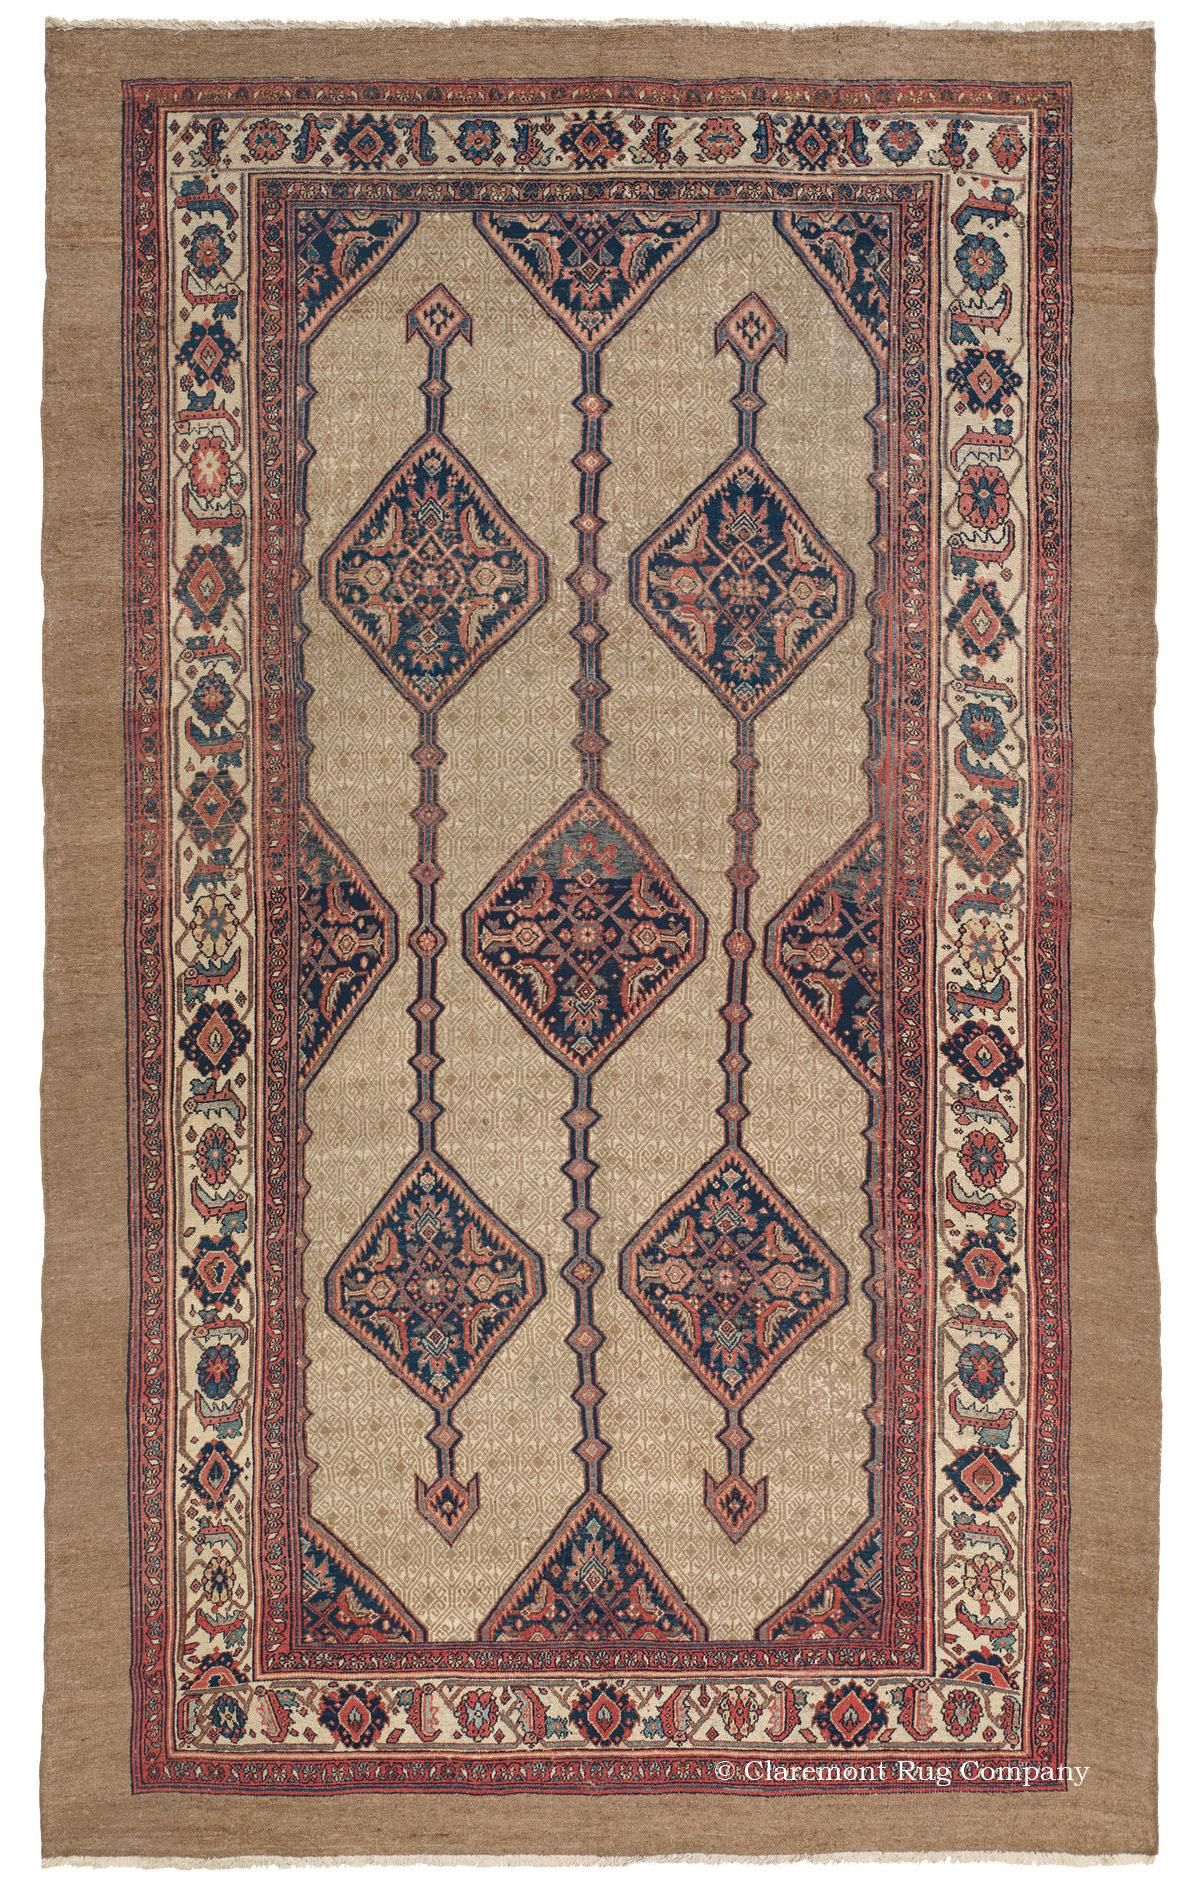 The Finest Antique Camelhair Rugs Are Very Rare, Representing The Antique  Rugs From Just A Handful Of Villages U0026 Tribes Of Mountainous Northwest  Persia. Good Ideas